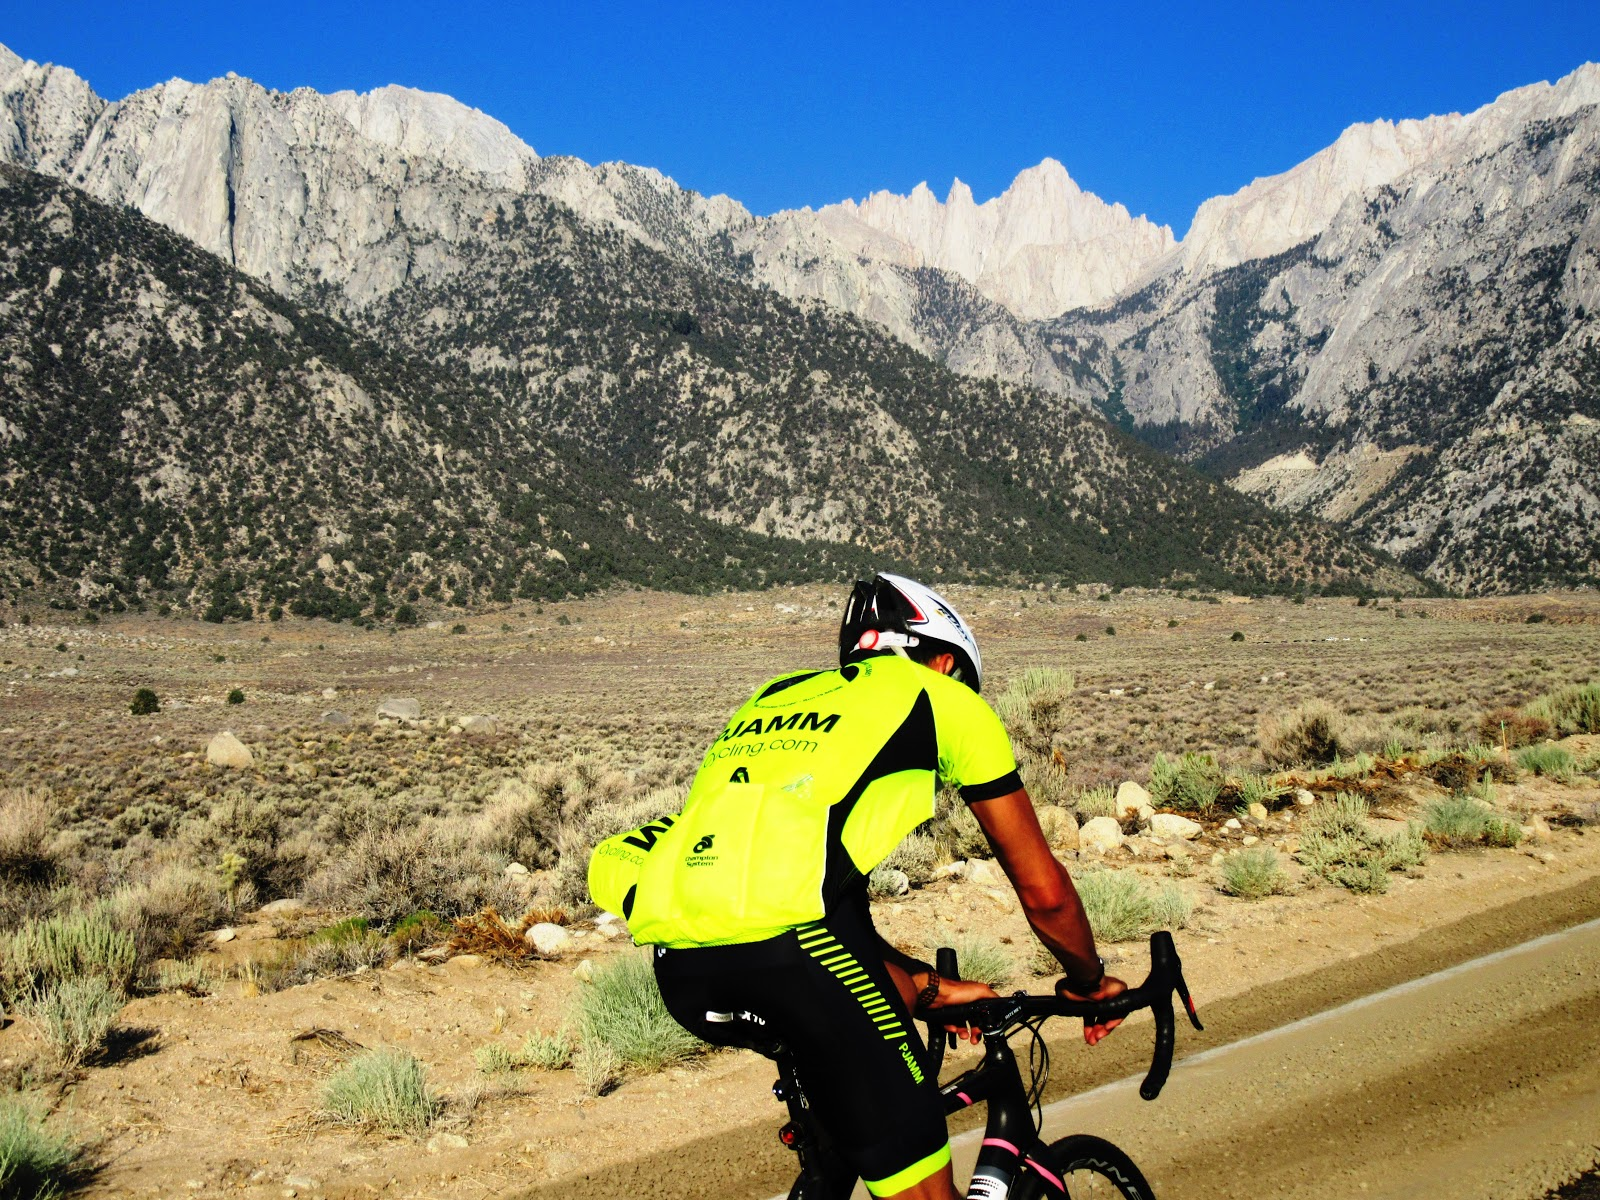 Cyclists riding on Whitney Portal Road Owens Valley - Mt. Whitney summit